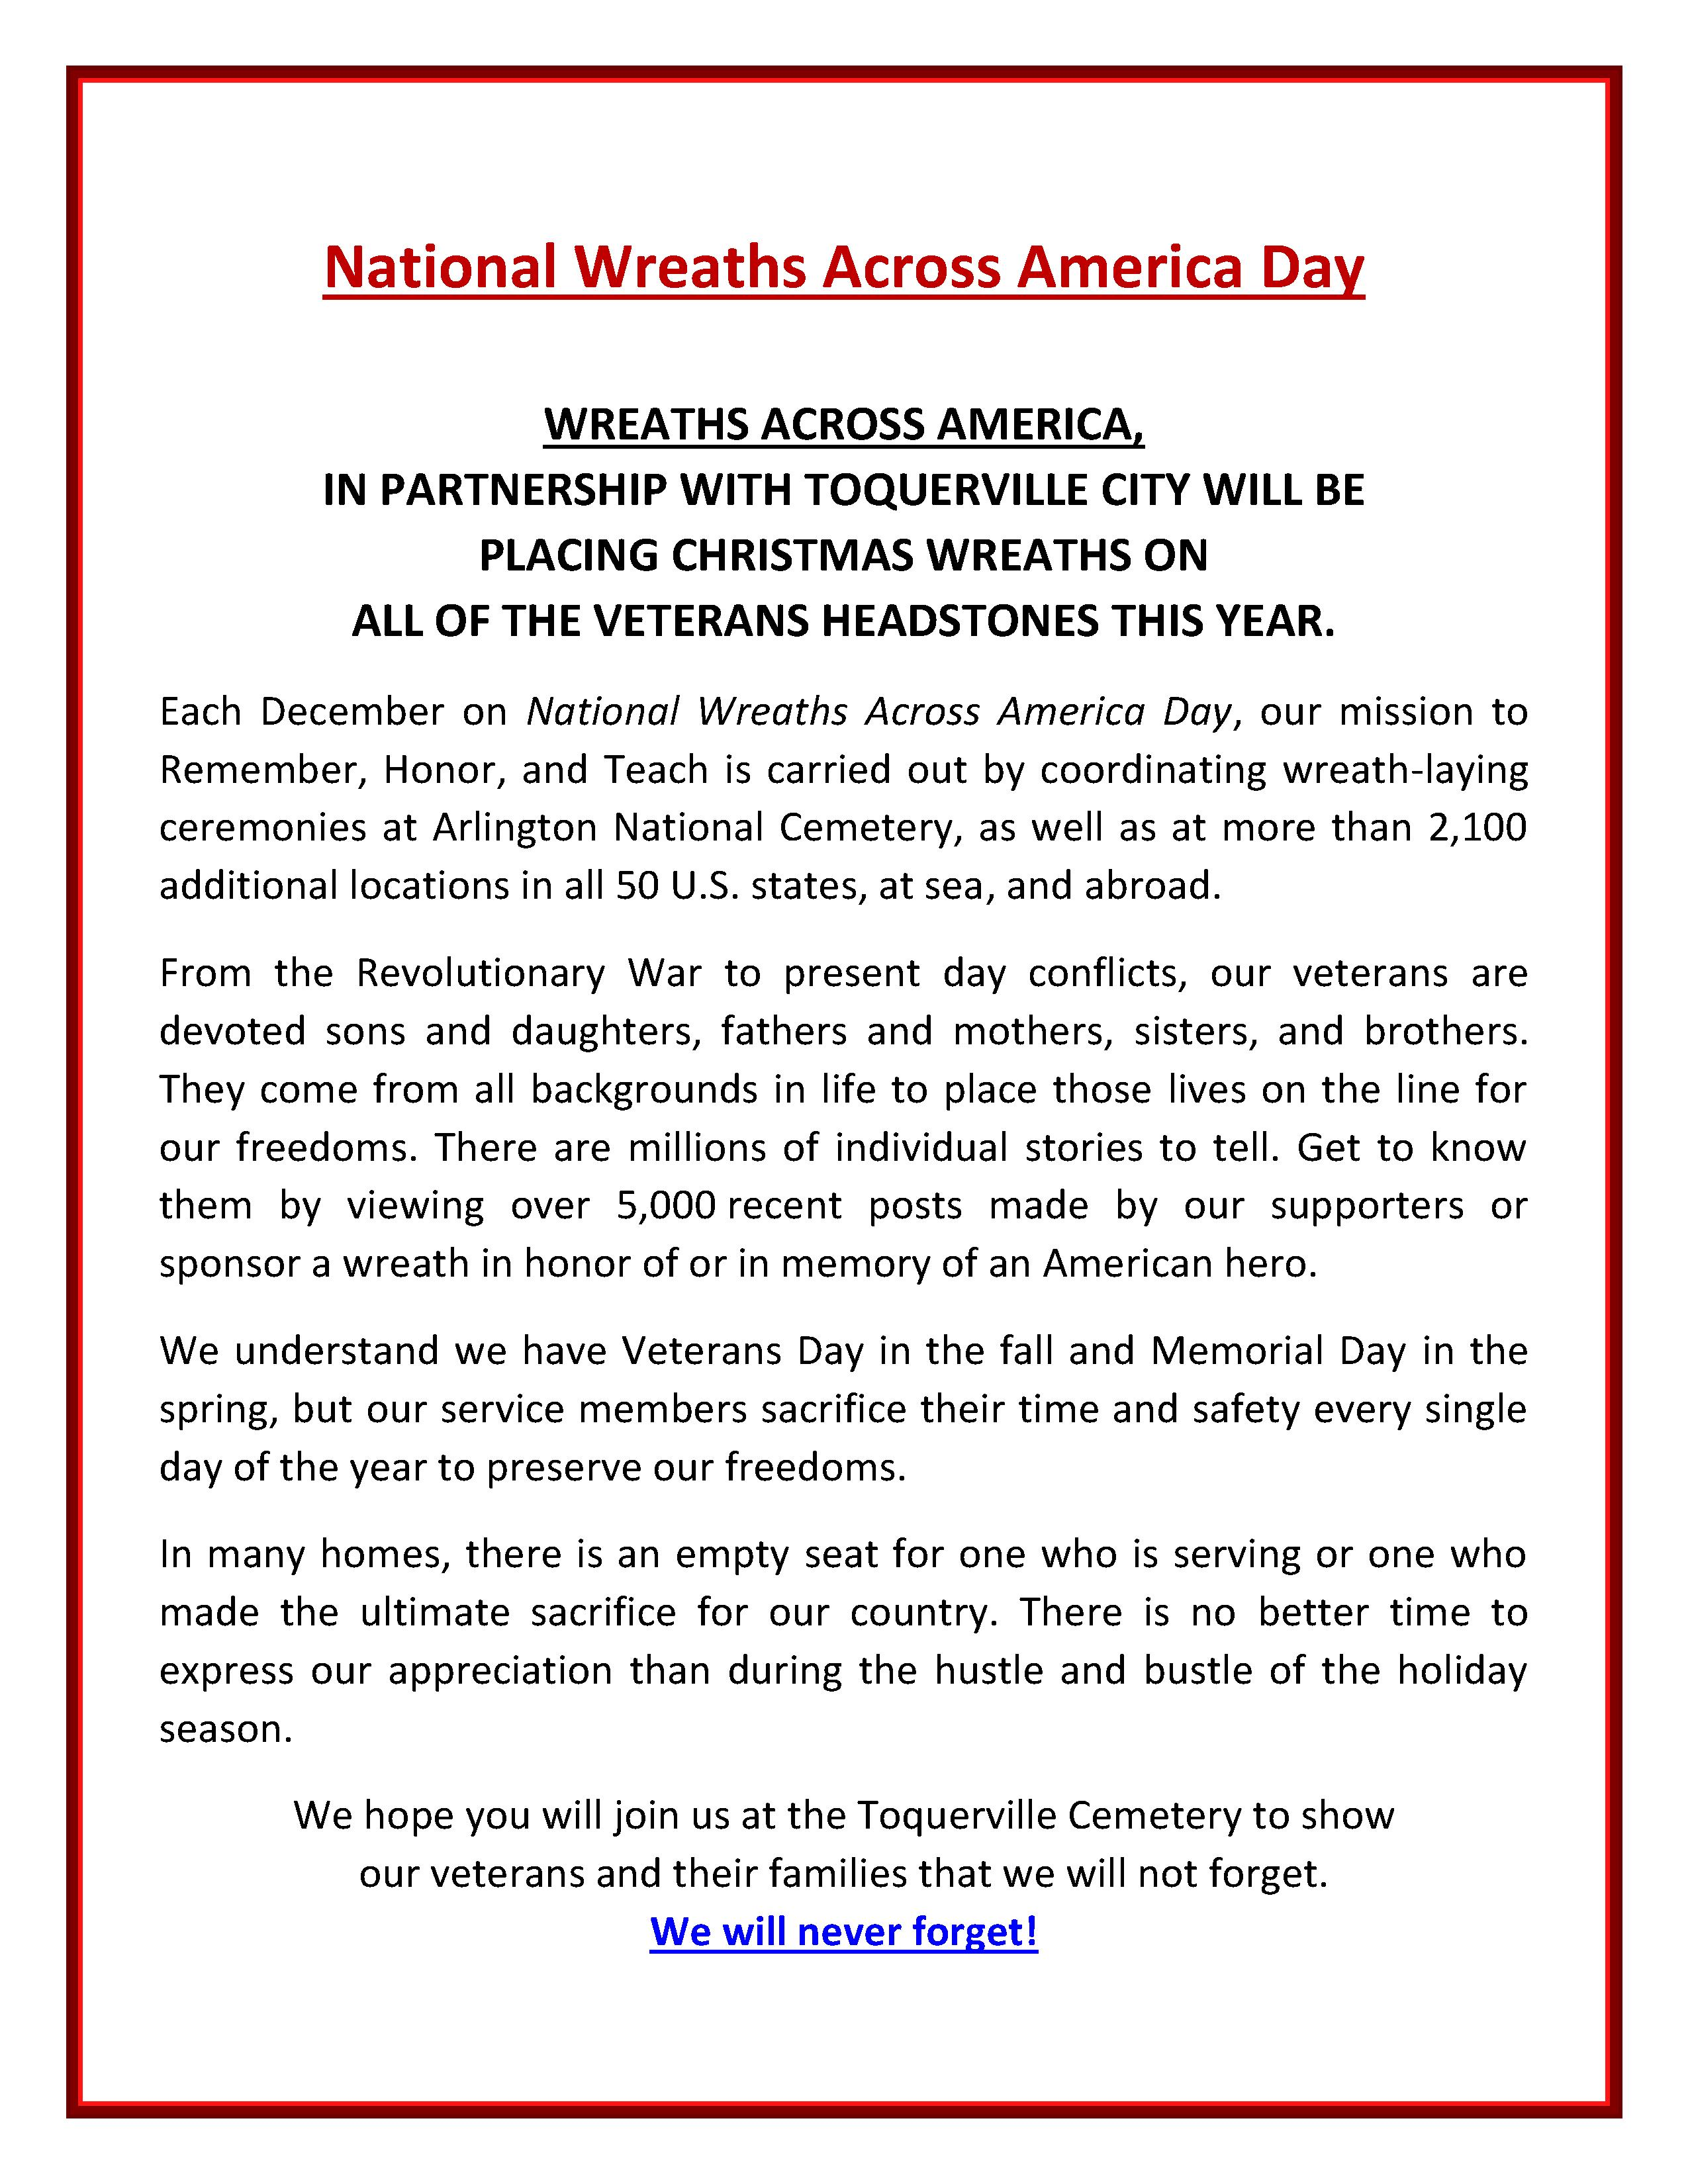 Toquerville Cemetery December 19th, 2020 at 10:00 a.m. Wreaths Across America Program